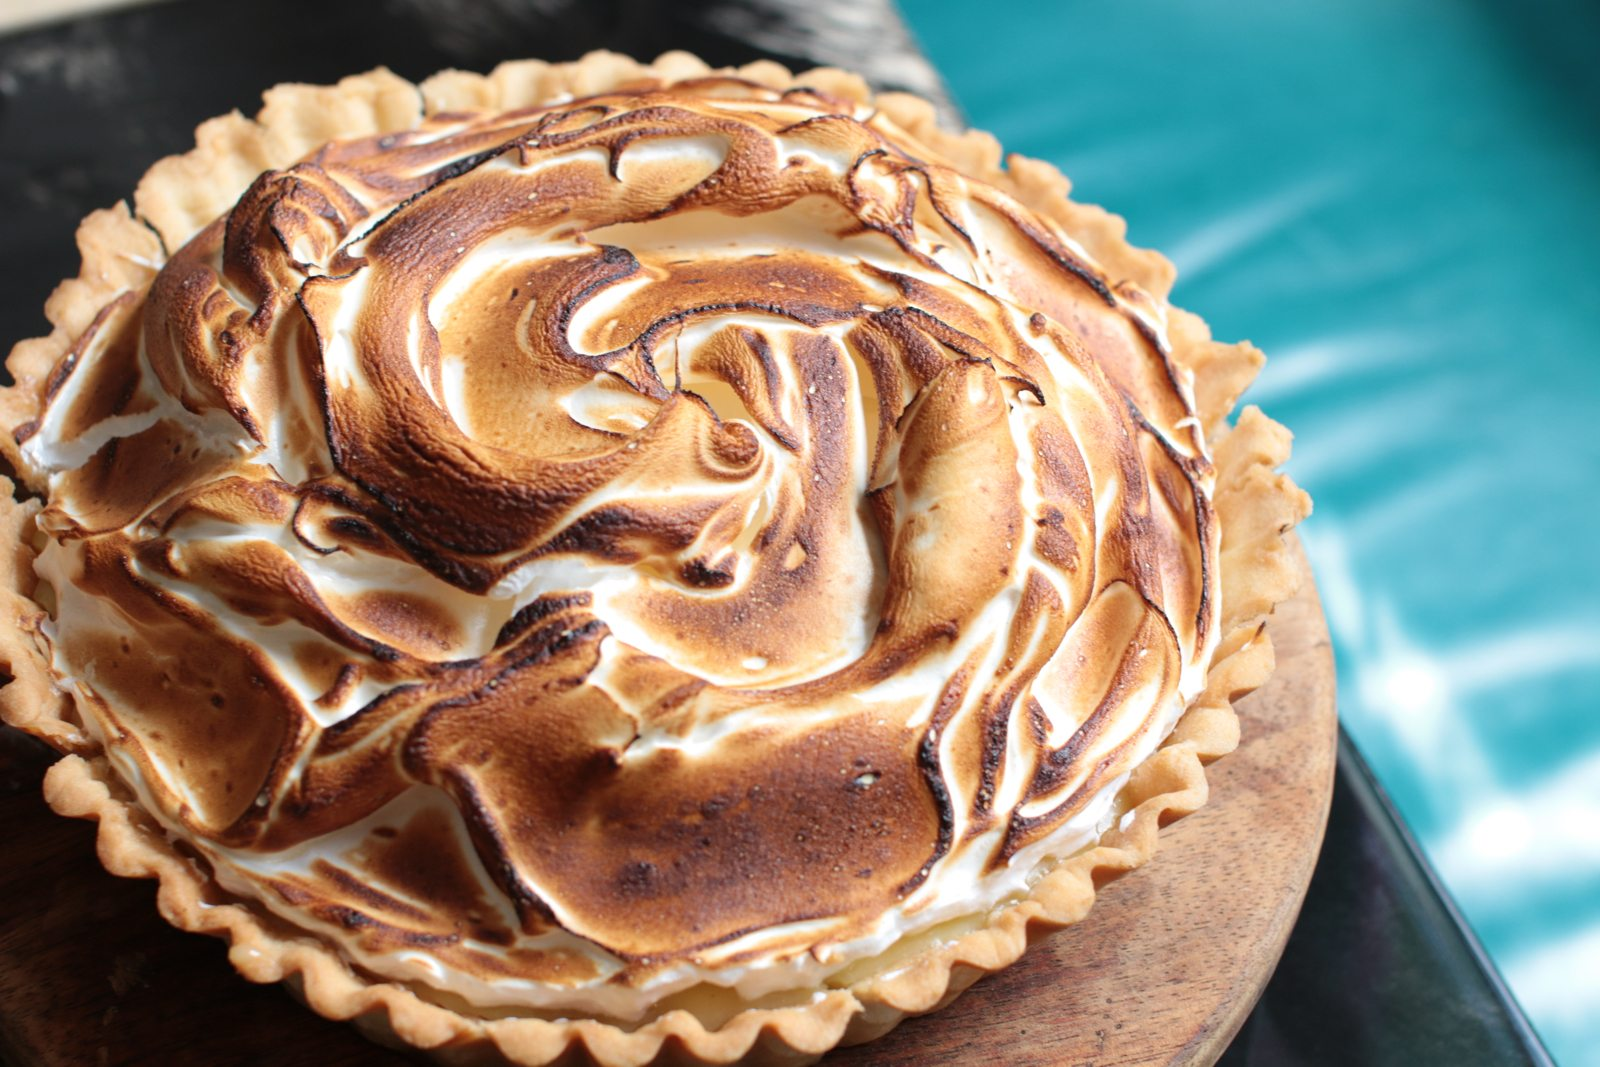 Pies, like this lemon meringue one, are available whole or by the slice.